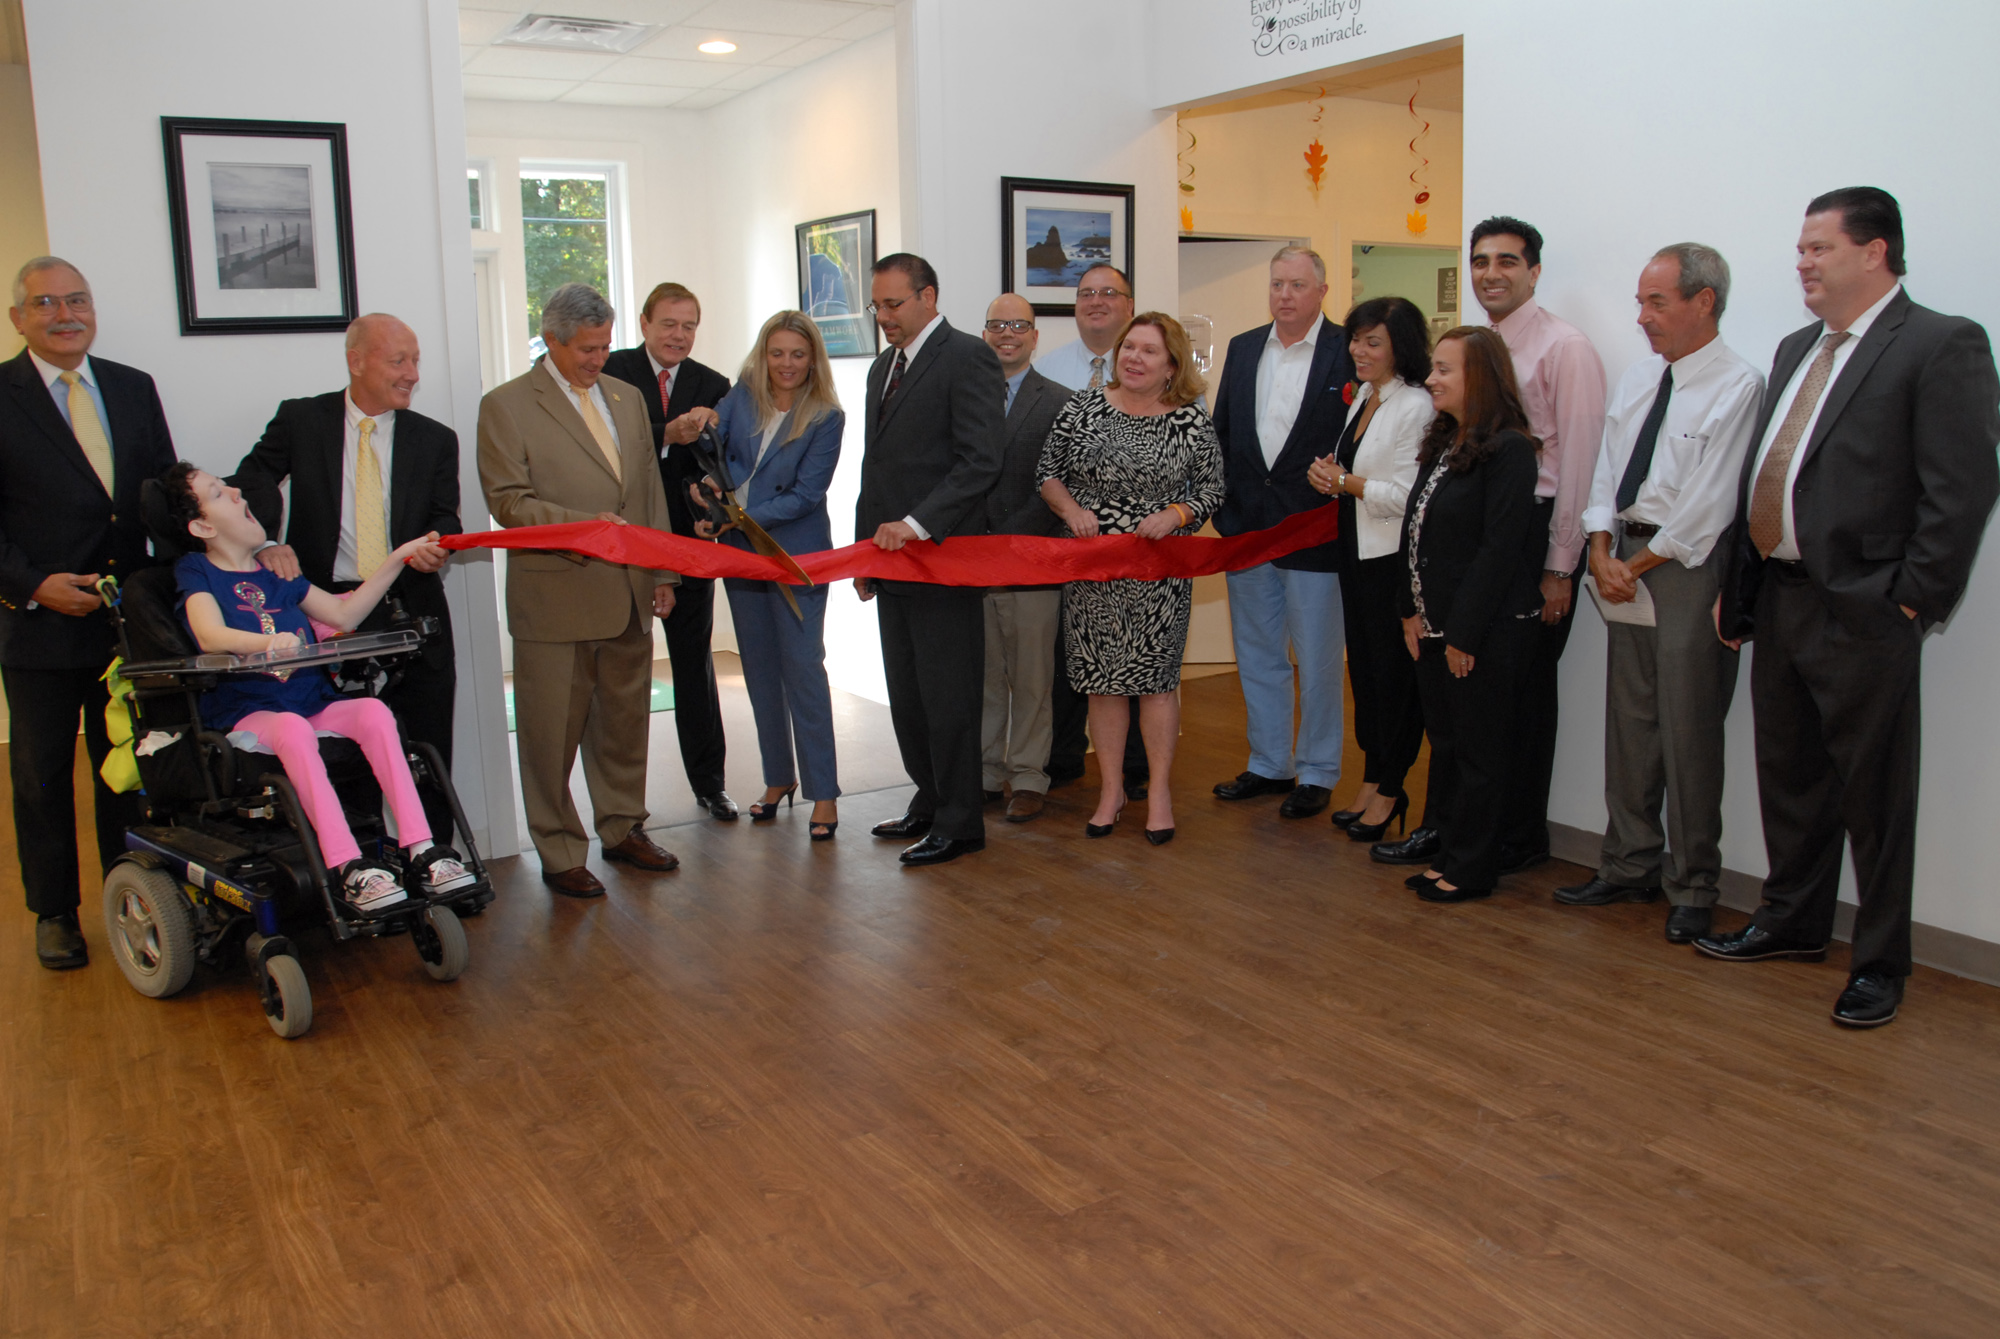 From left: Philip Lian, COE Board member; Kimberly Spano; James Spano, COE Board member; Senator Christopher 'Kip' Bateman; Robert Stack, President and CEO of Community Options, Inc.; Svetlana Repic-Qira , Community Options, Inc. Regional Vice President of New Jersey;Anthony Ferrera, Administrator/Deputy Township Clerk for Hillsborough Township; David Kois, Business Advocate for Hillsborough Township; Daniel Surtz, COE Board Member; Gail Gordon, COE Board Member; Alec Taylor, COE Board Member; Linda Thomas, member of the Red Ribbon Academy's Parent Group; Dr. Baber Ghauri, COE Board Member; Courtney Eidel, Chief Administrative Officer of Community Options, Inc.; Paul Hritz, COE Board Member and David Sweeney, Chief Financial Officer of Community Options, Inc open the new Red Ribbon Academy in Hillsborough, NJ.